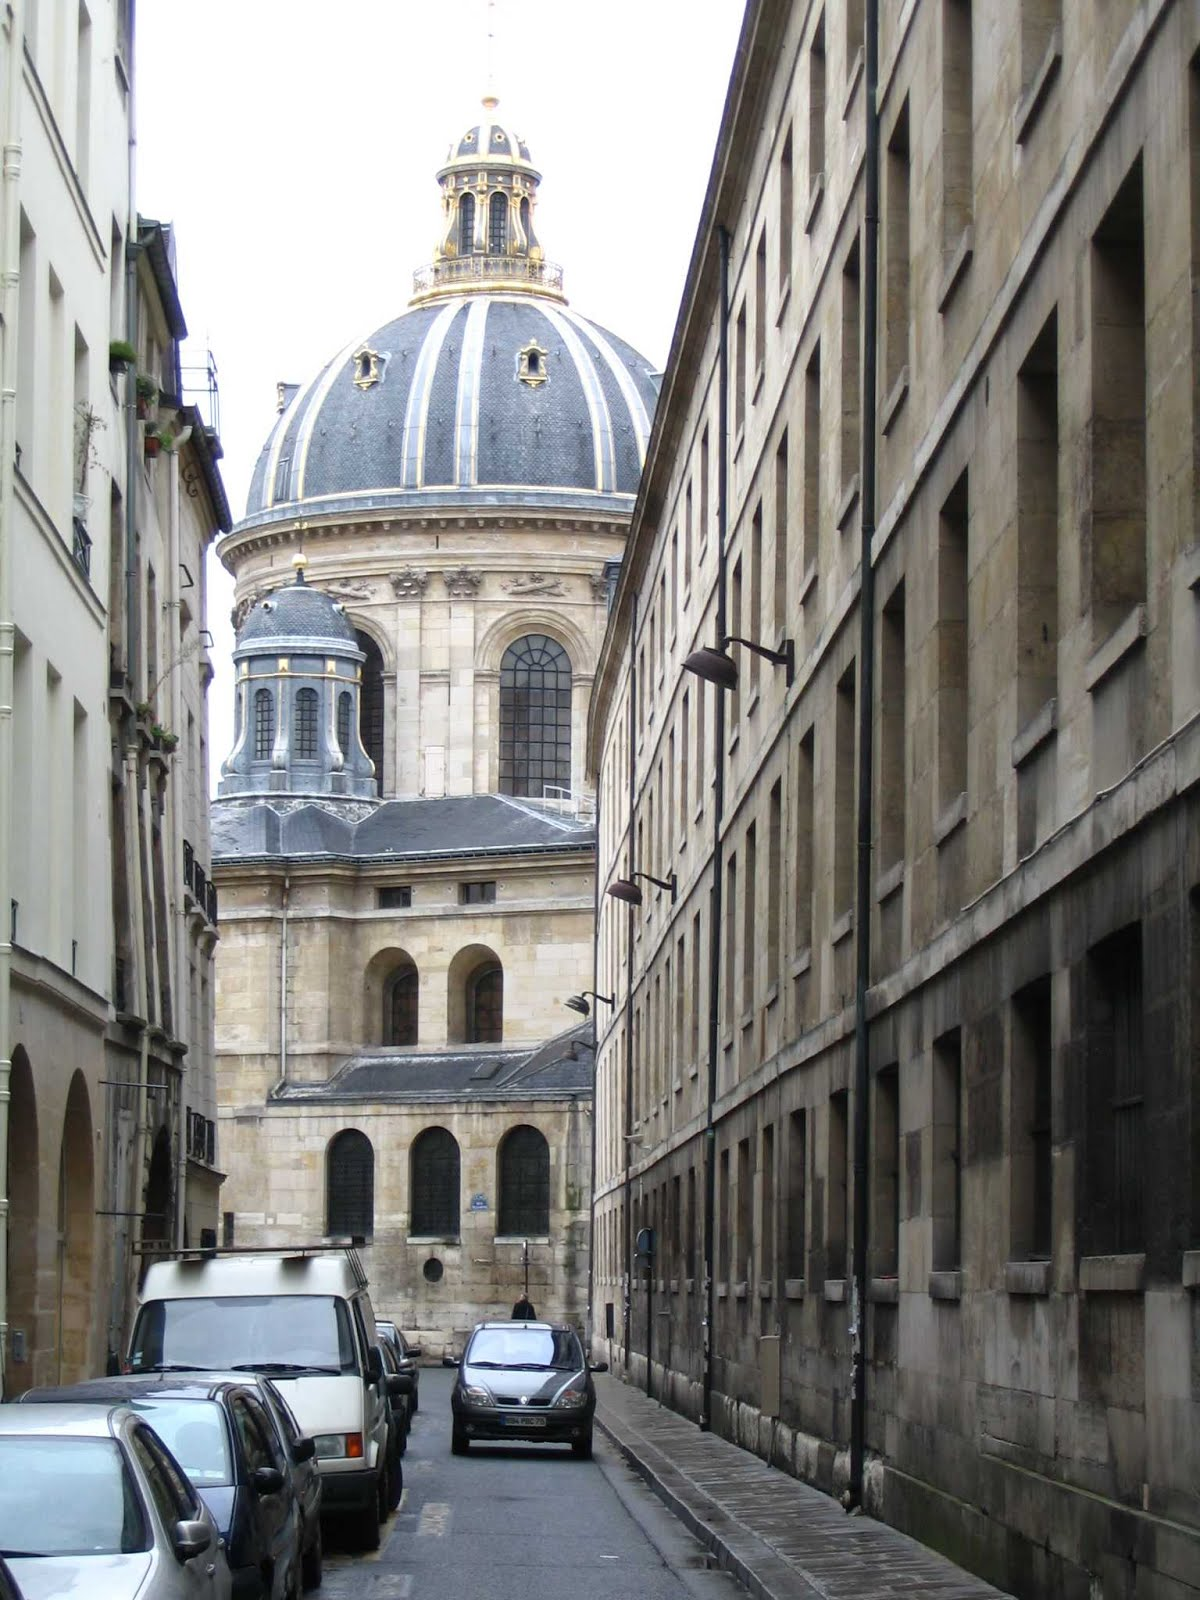 (4) The Jewel of St. Germain